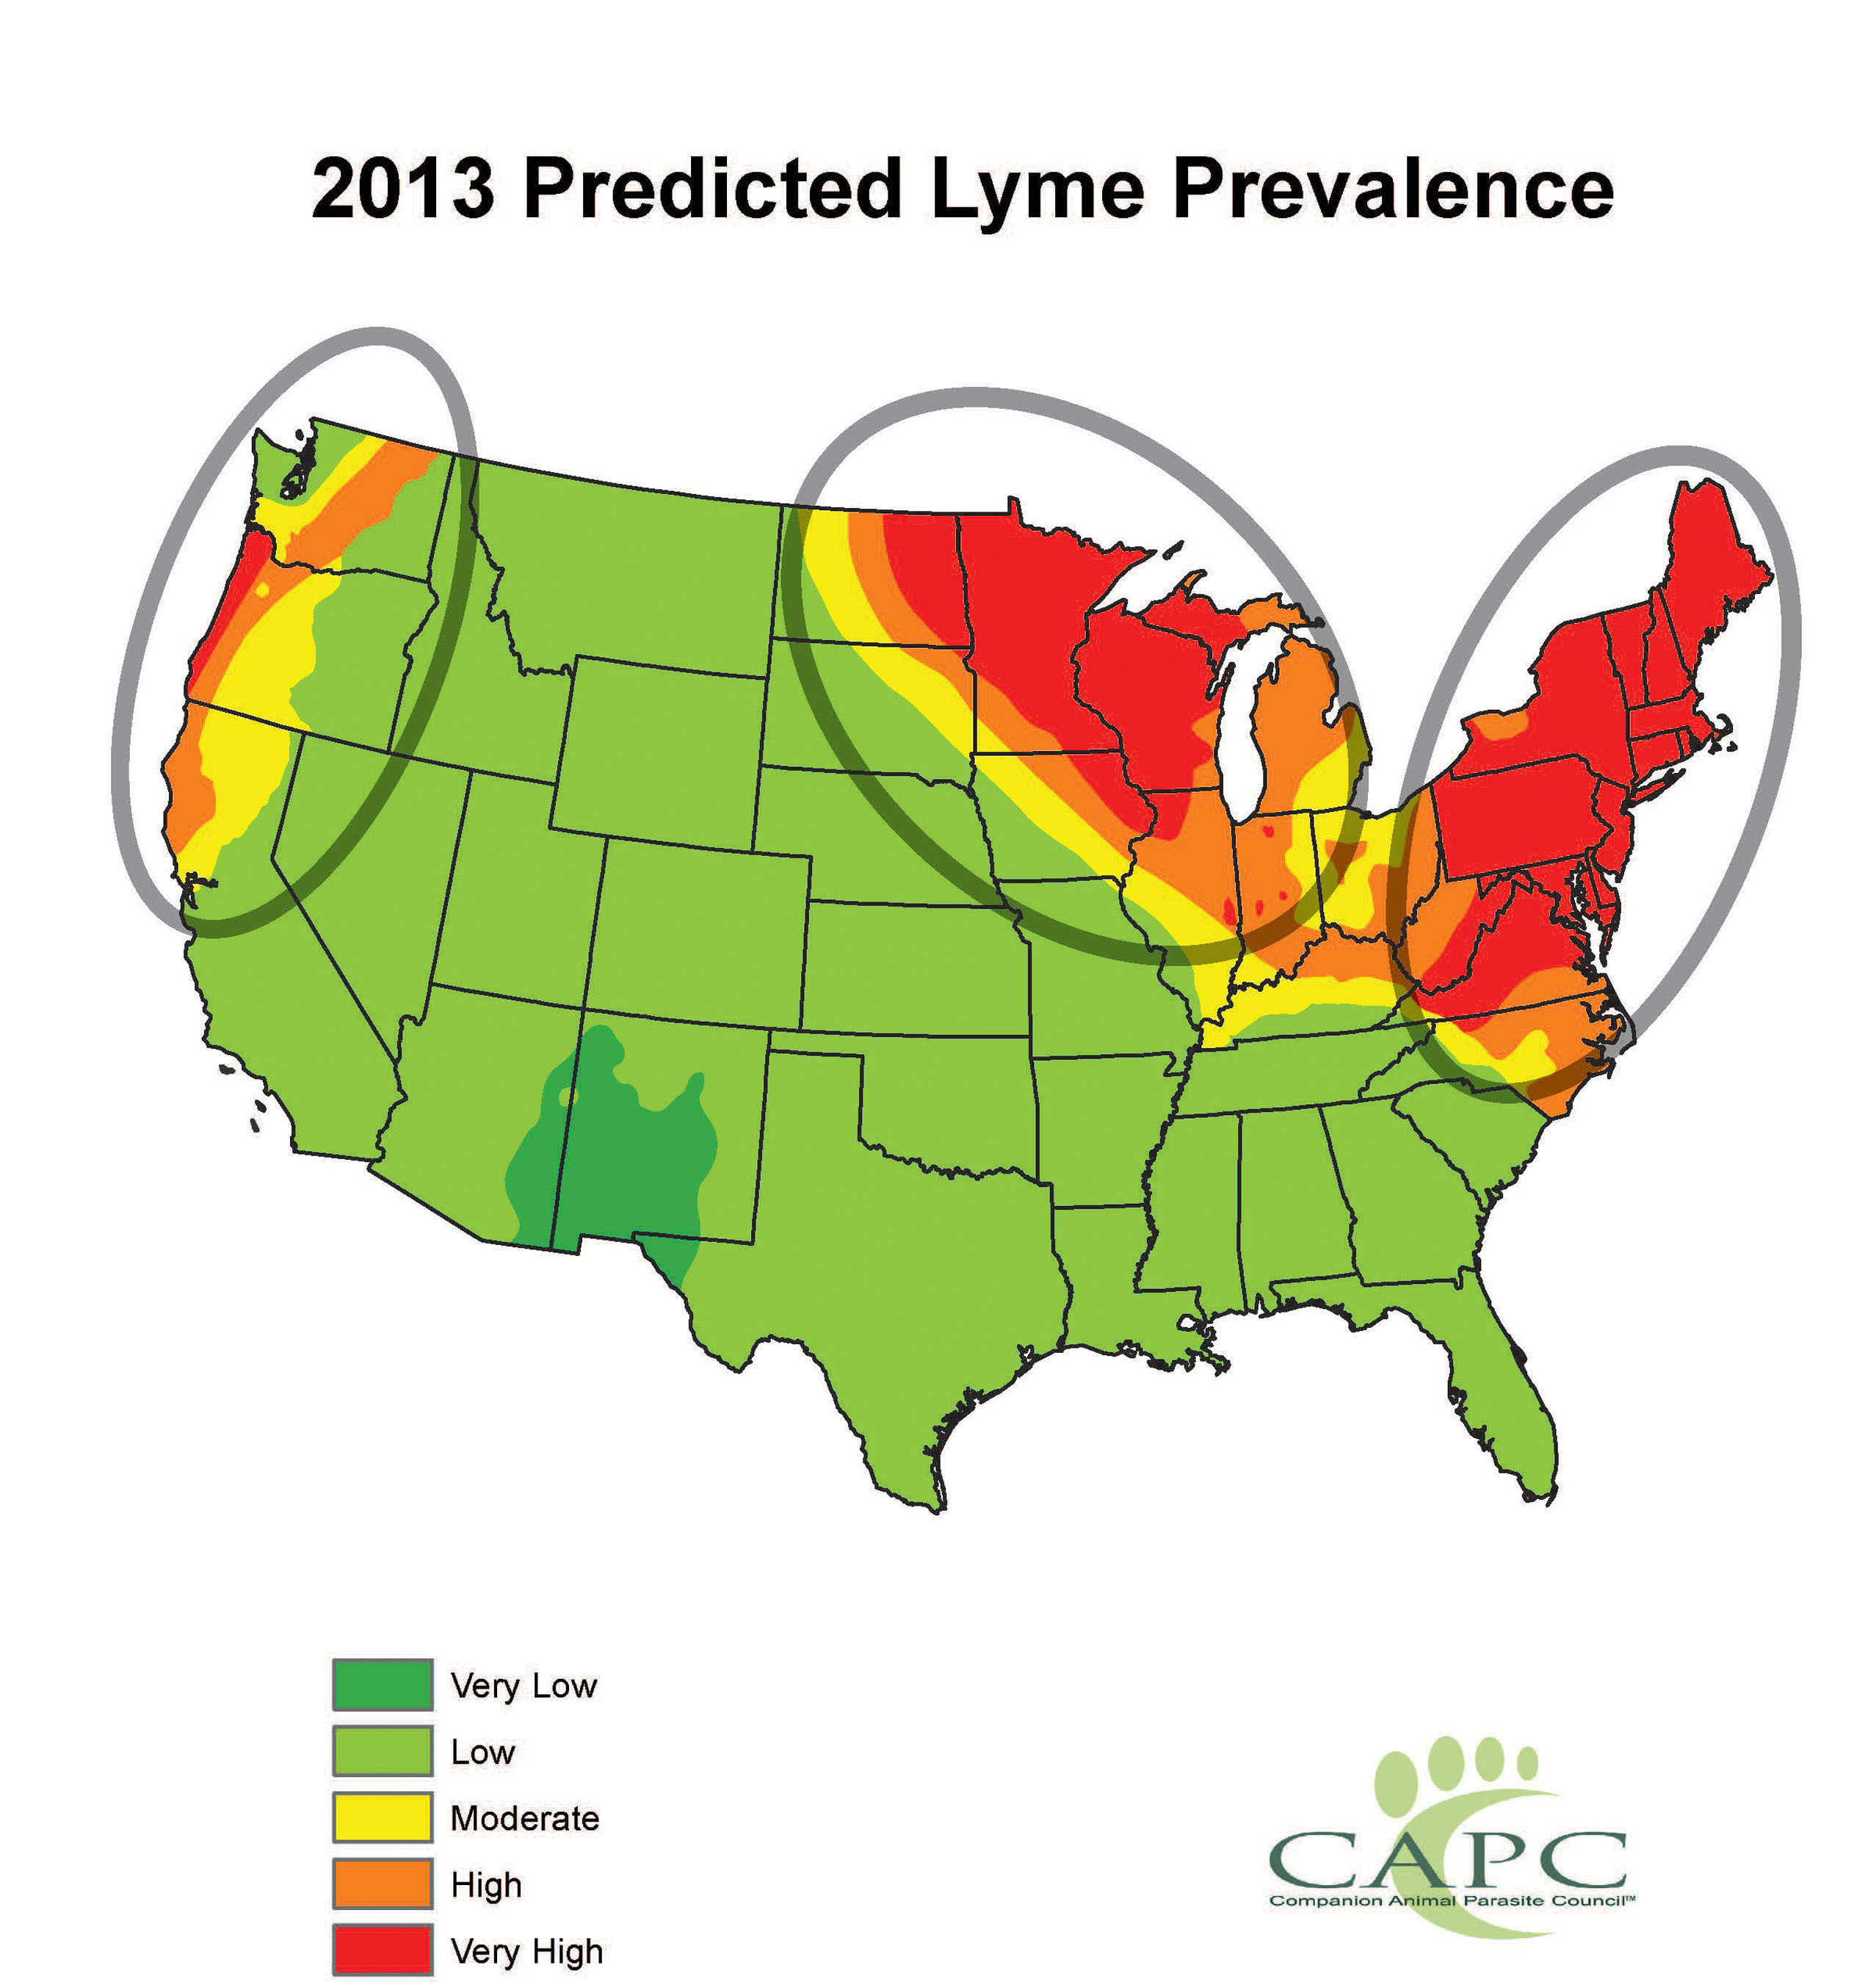 CAPC Predicts Lyme Disease Extremely High This Year